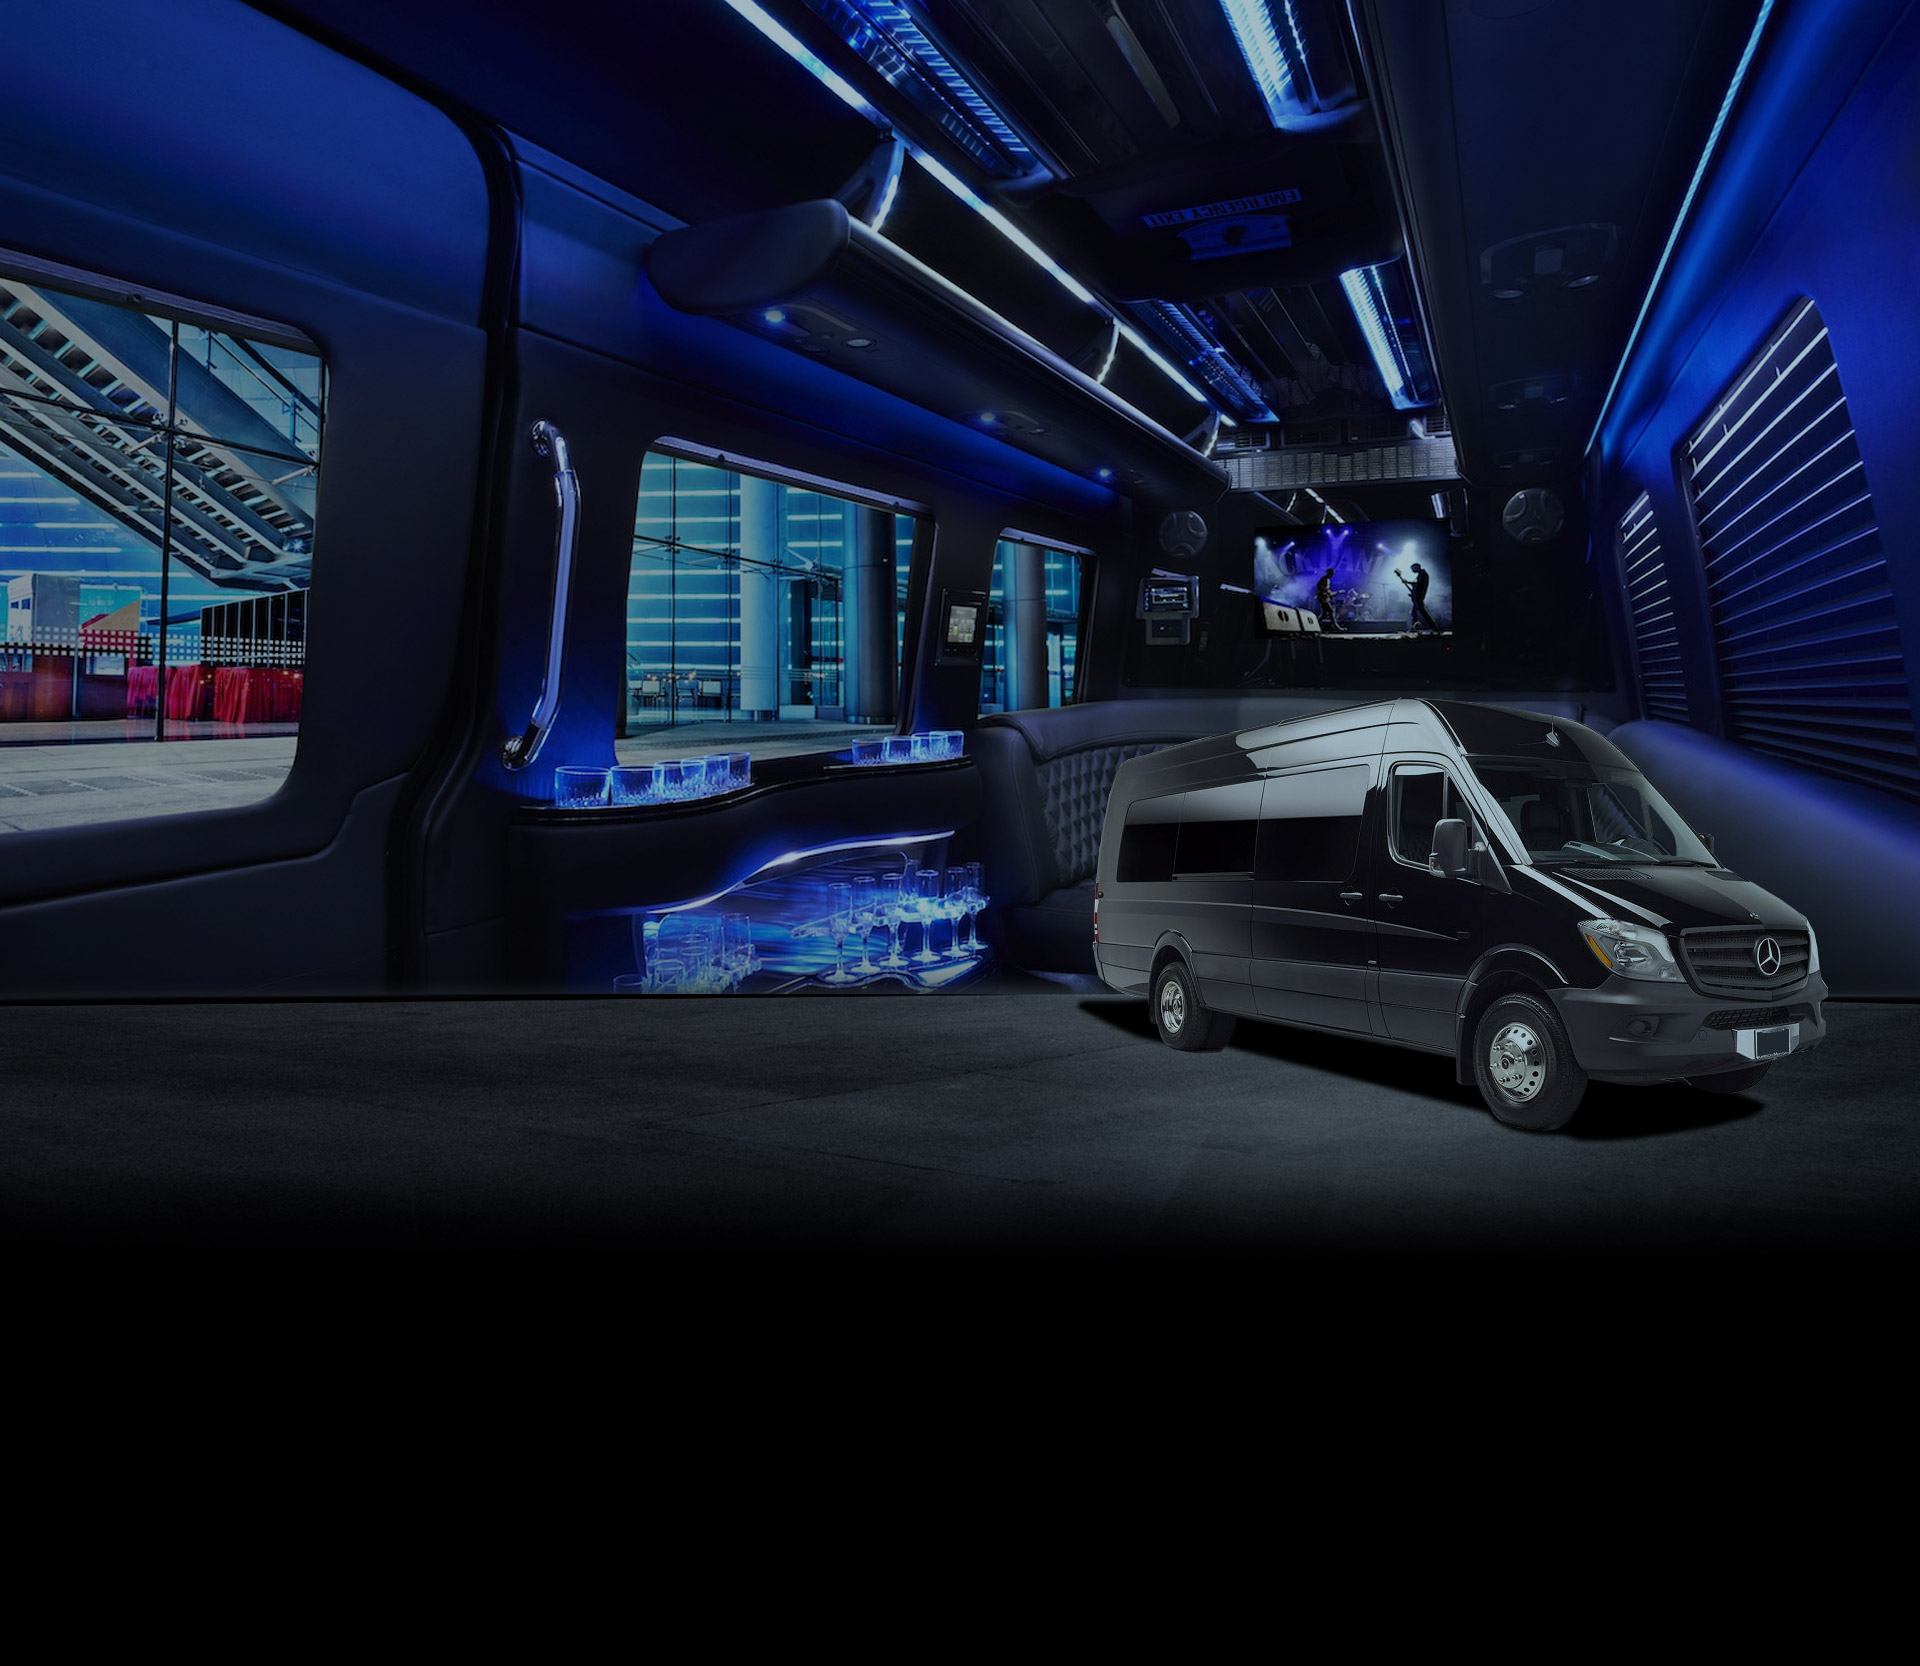 Houston Limo, Car, and Transportation Services Company - FTS